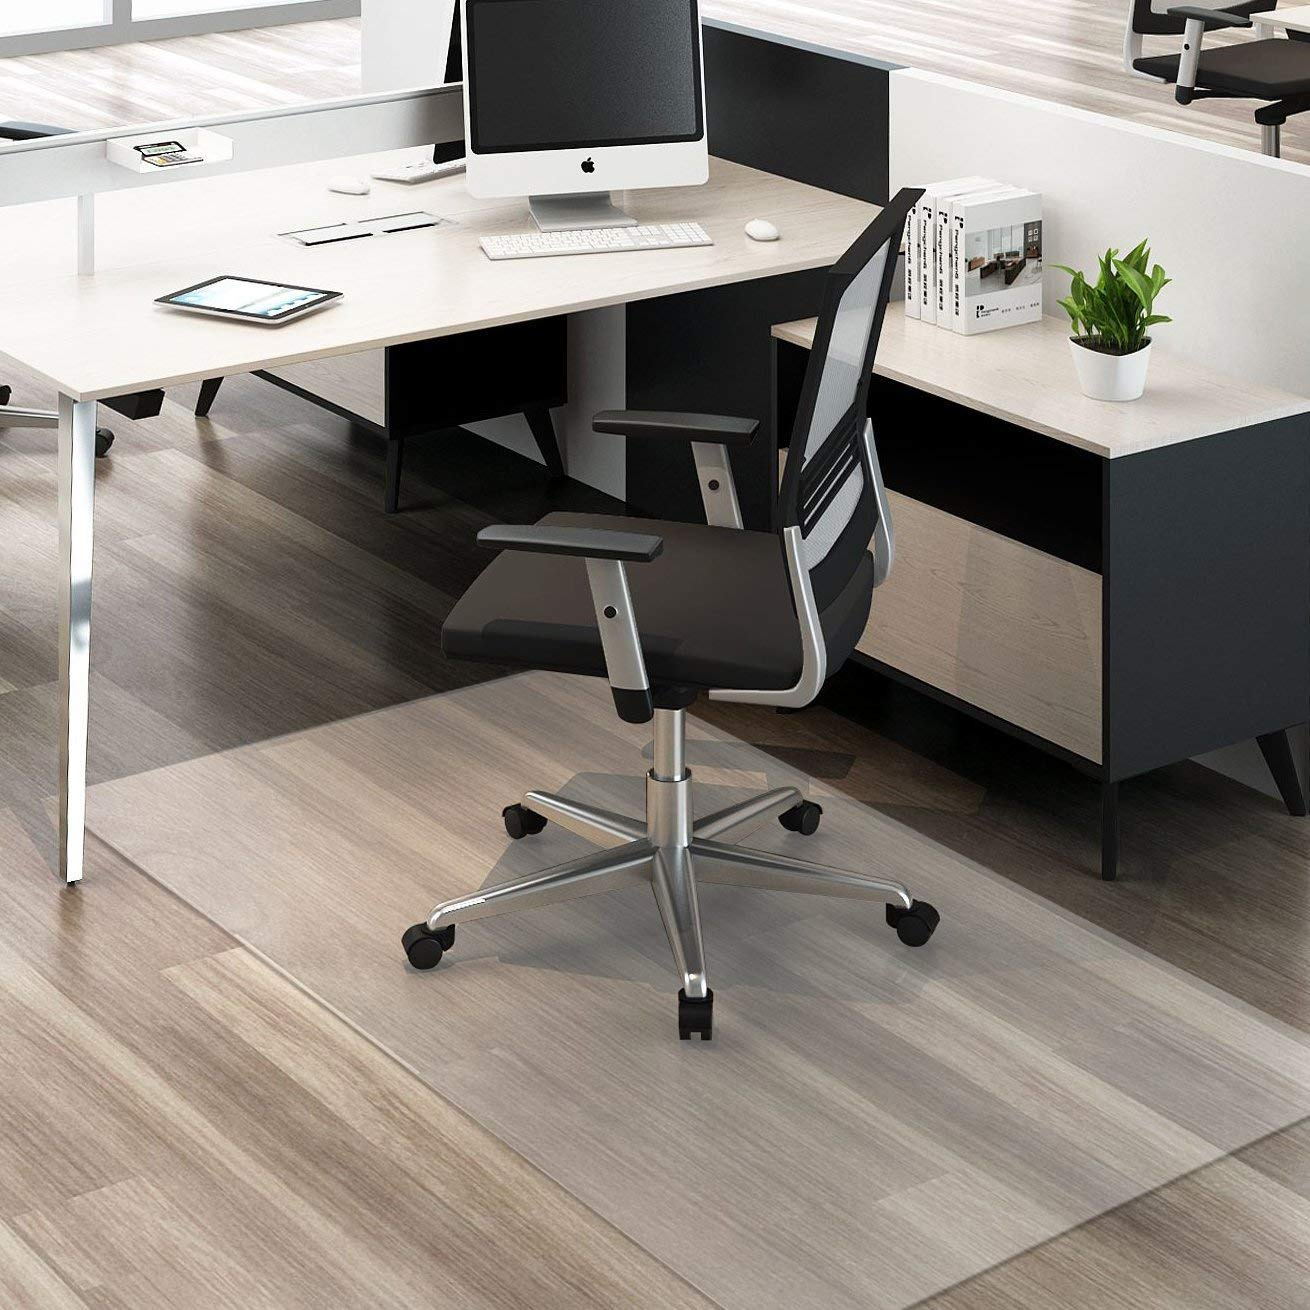 HYNAWIN Large Office Chair Mat for Hardwood Floors - 59''×47'',Heavy Duty Clear Wood/Tile Floor Protector PVC Transparent by HYNAWIN